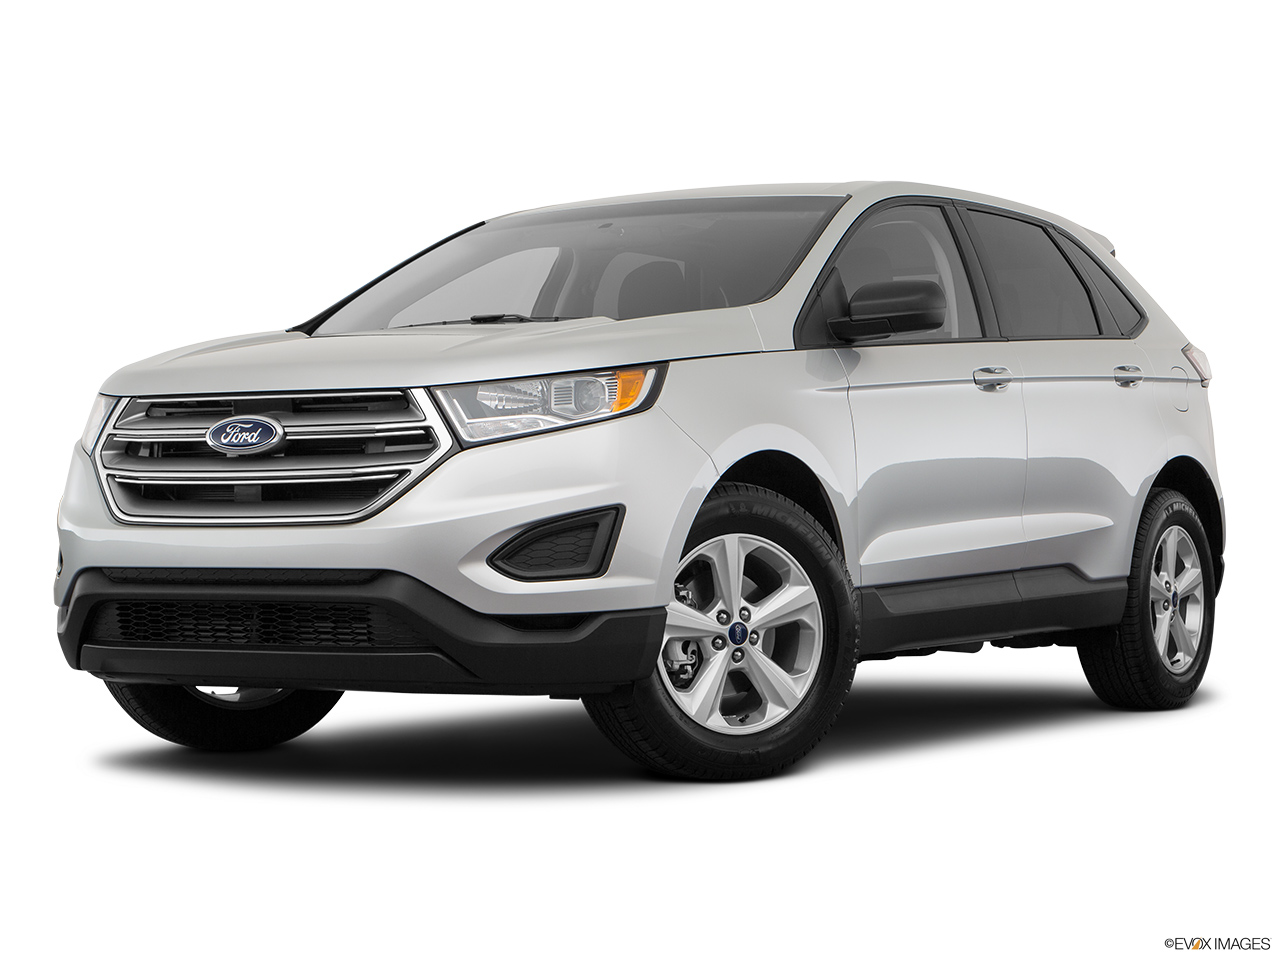 Ford Edge L V Se Kuwait Front Angle Medium View